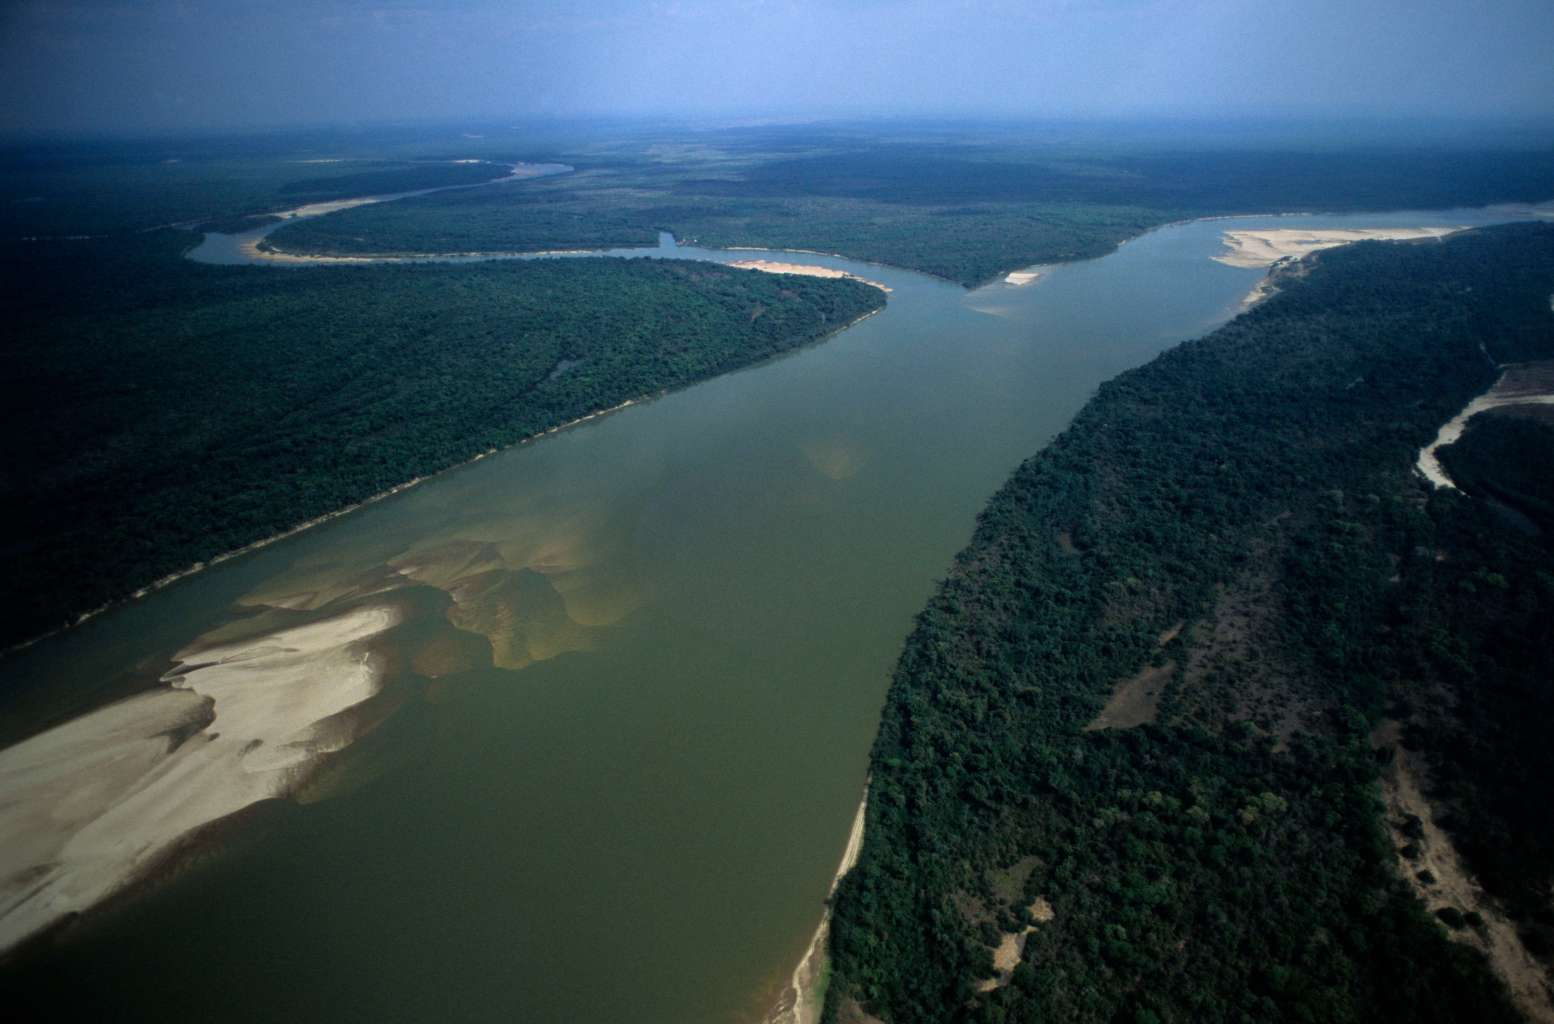 BANANAL ISLAND, BRAZIL - 2015/11/24: Banks of the Araguaia river showing sand slopes - fluvial beach or river beach - at Ilha do Bananal ( Bananal island ), the world´s largest fluvial island, Amazon rainforest, Brazil. (Photo by Jose Caldas/Brazil Photos/LightRocket via Getty Images)